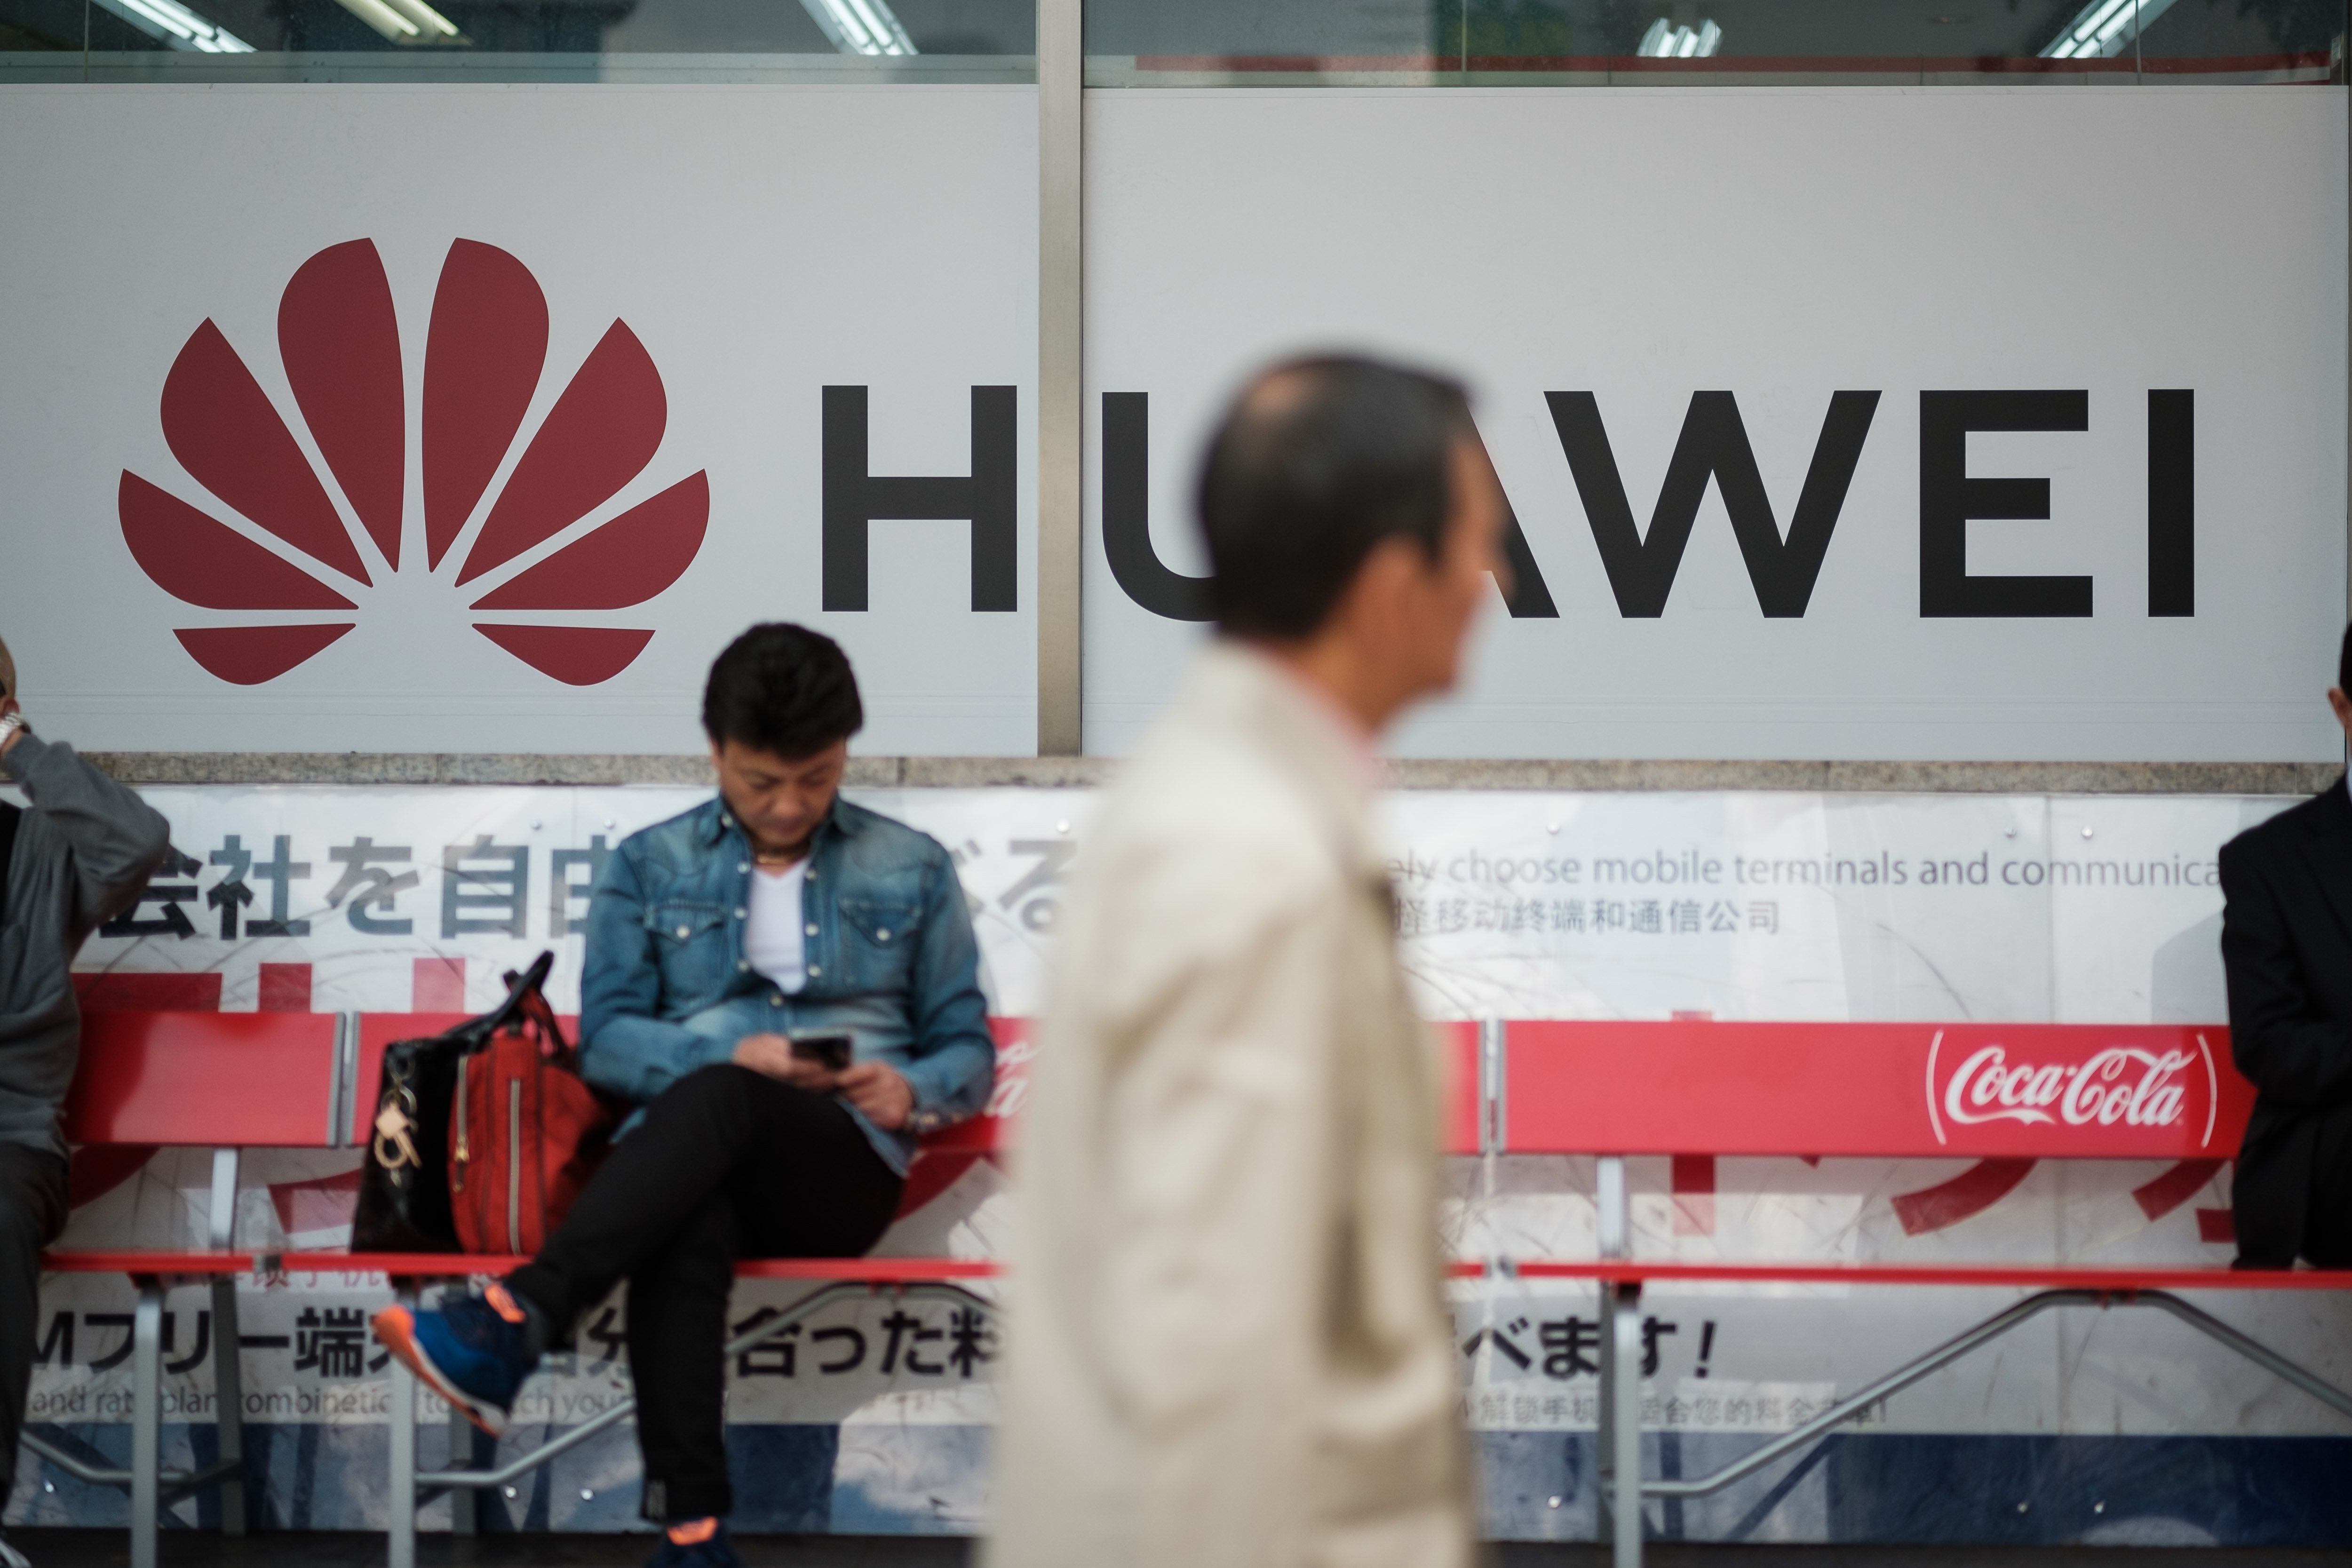 Trump Hits Huawei In the Mouth: How Can That Hit You In the Pocket?